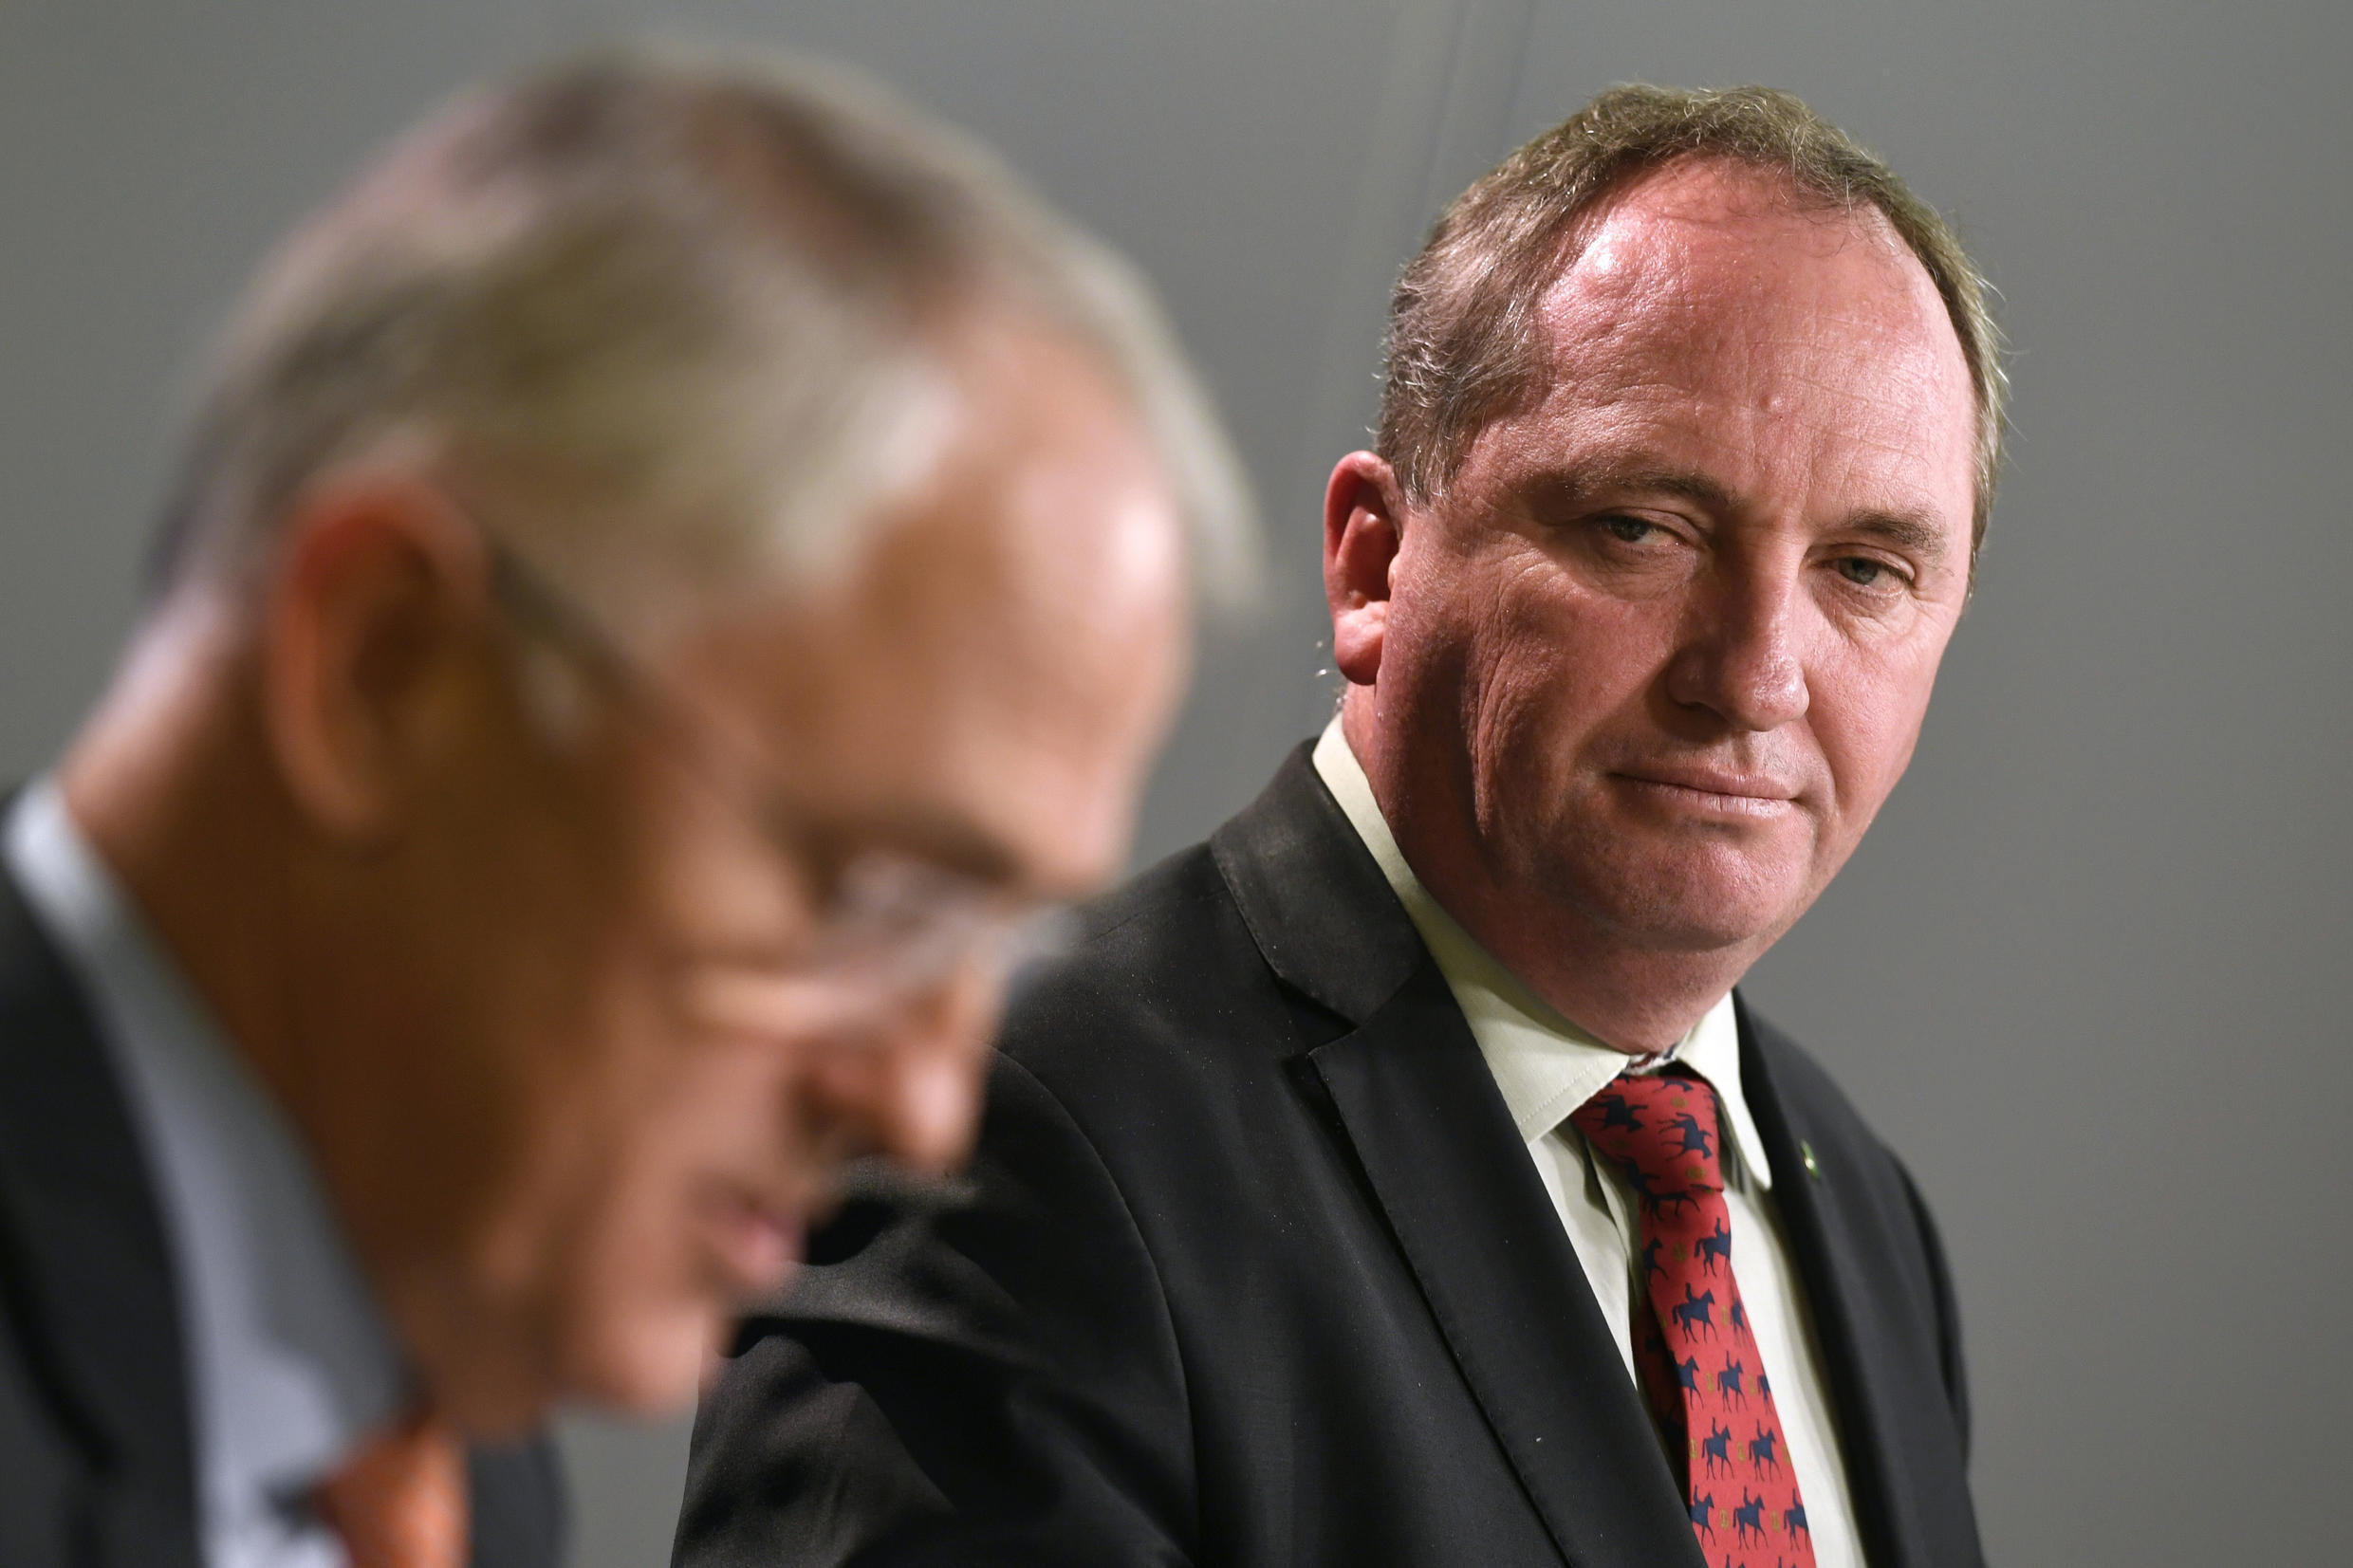 Australia's Deputy Prime Minister Barnaby Joyce with Prime Minister Malcolm Turnbull at a press conference in Sydney last year